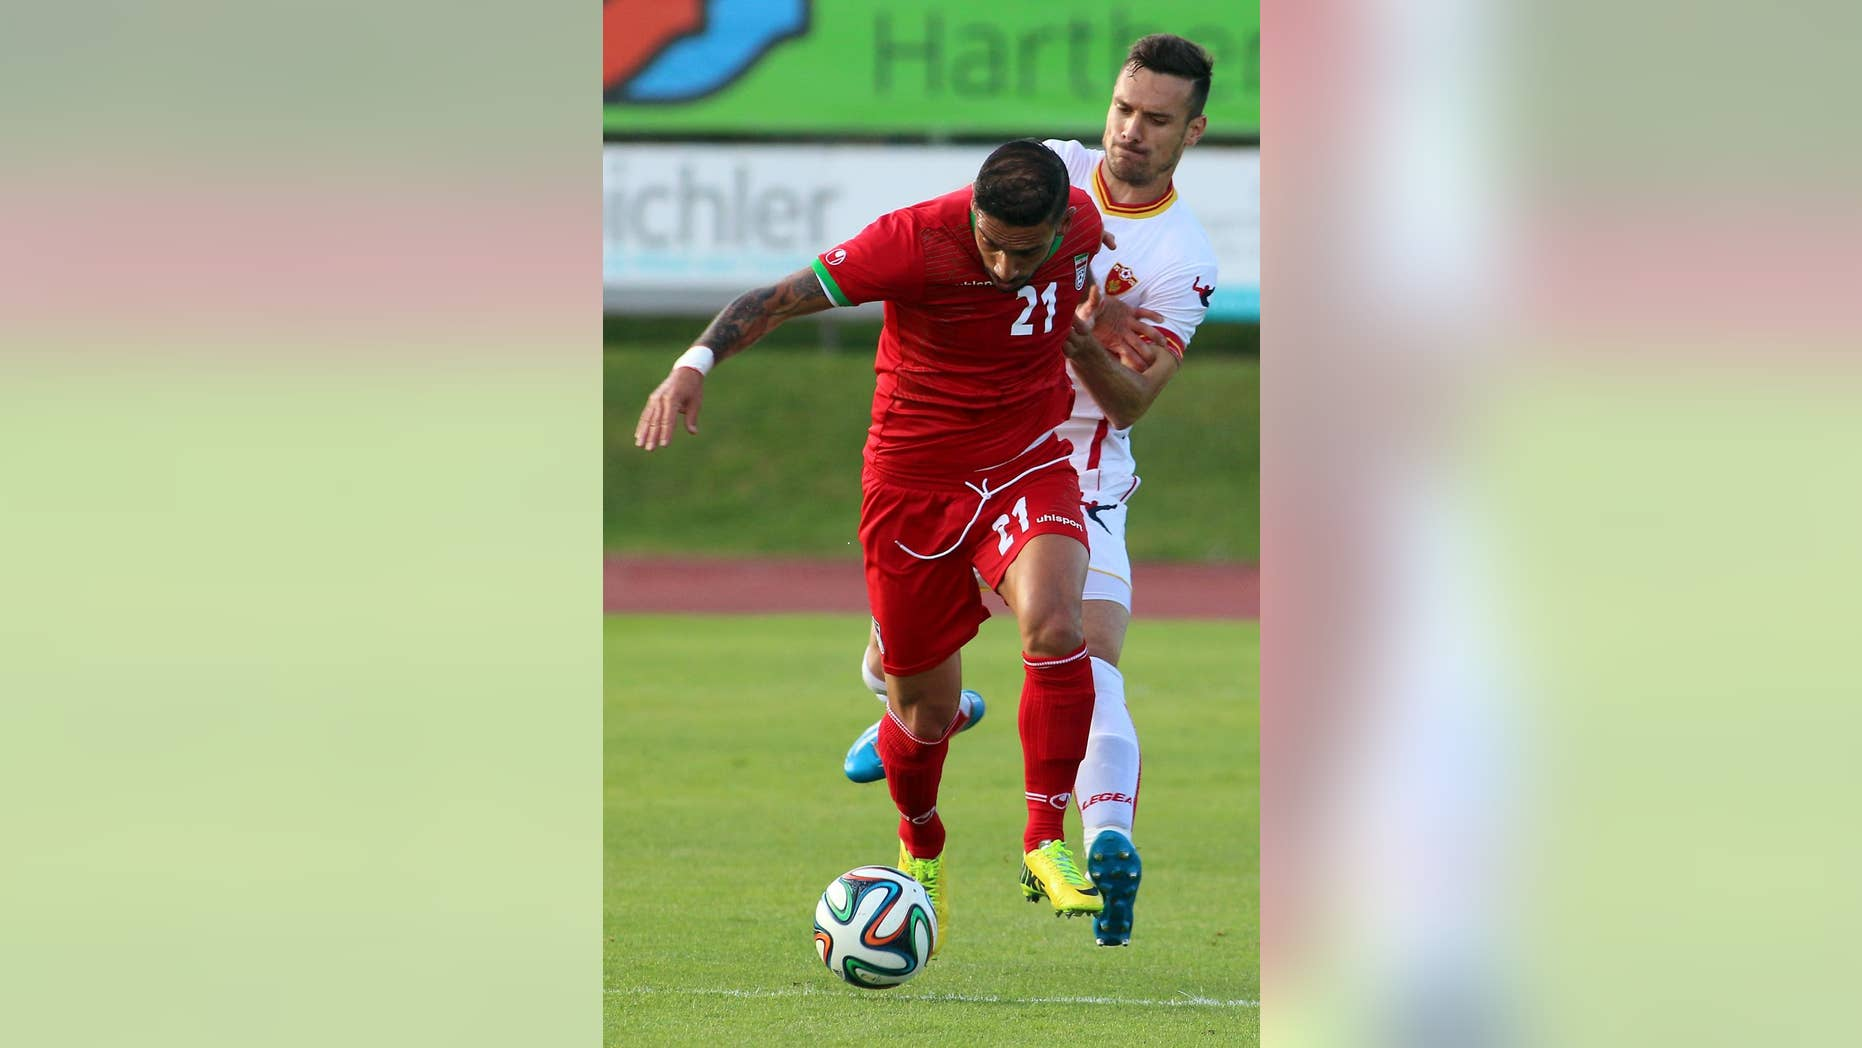 Iran's Ashkan Dejagah, left, challenges for a ball with Marko Vesovic, right, of Montenegro during a friendly soccer match between Iran and Montenegro, in Hartberg, Austria, Monday, May 26, 2014. (AP Photo/Ronald Zak)